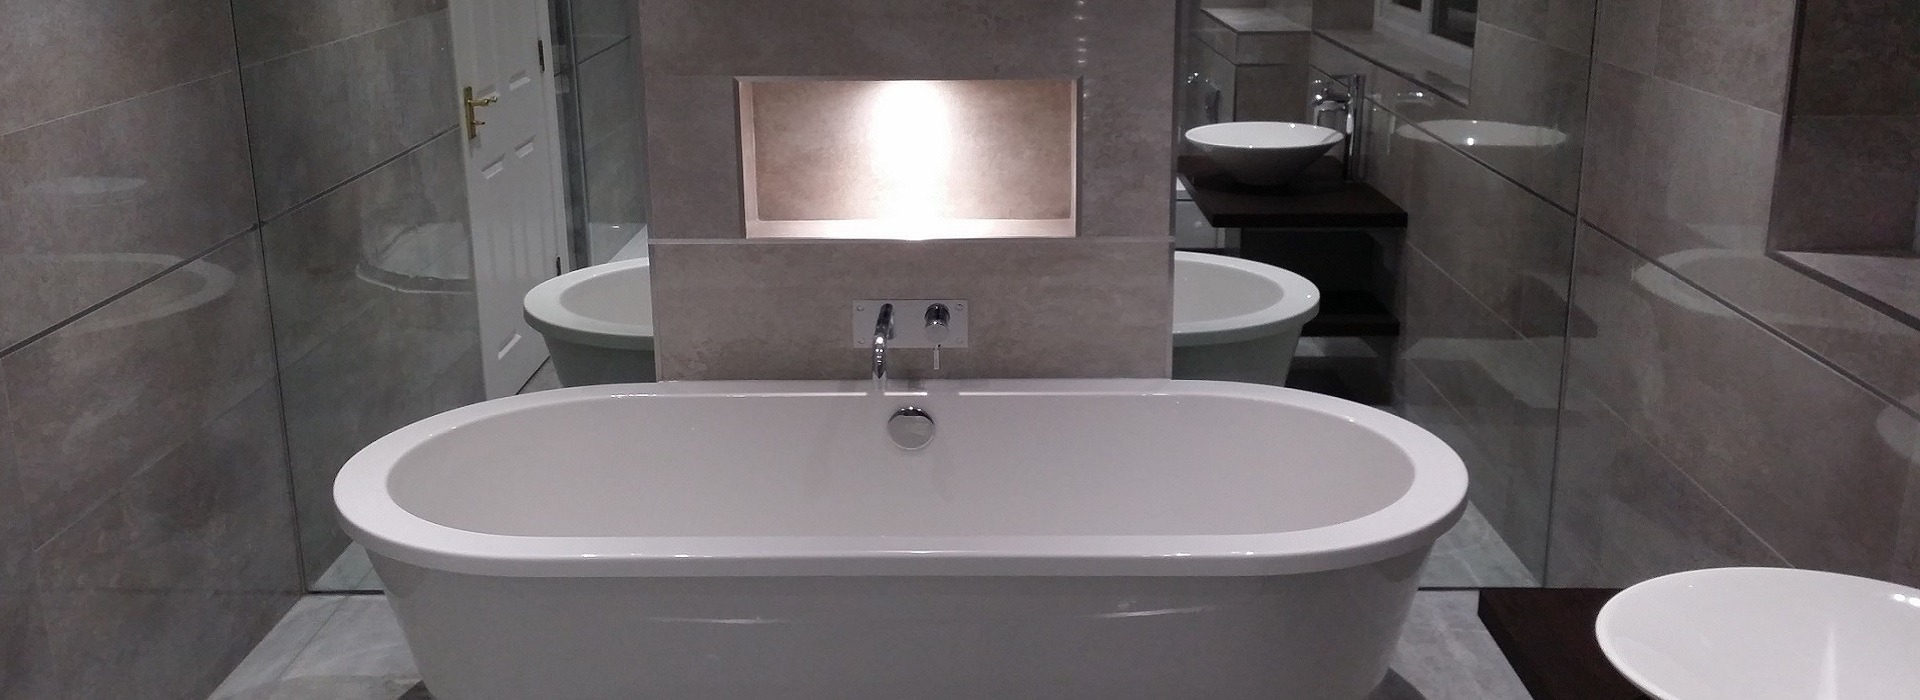 Recommended Southampton Bathroom Fitters